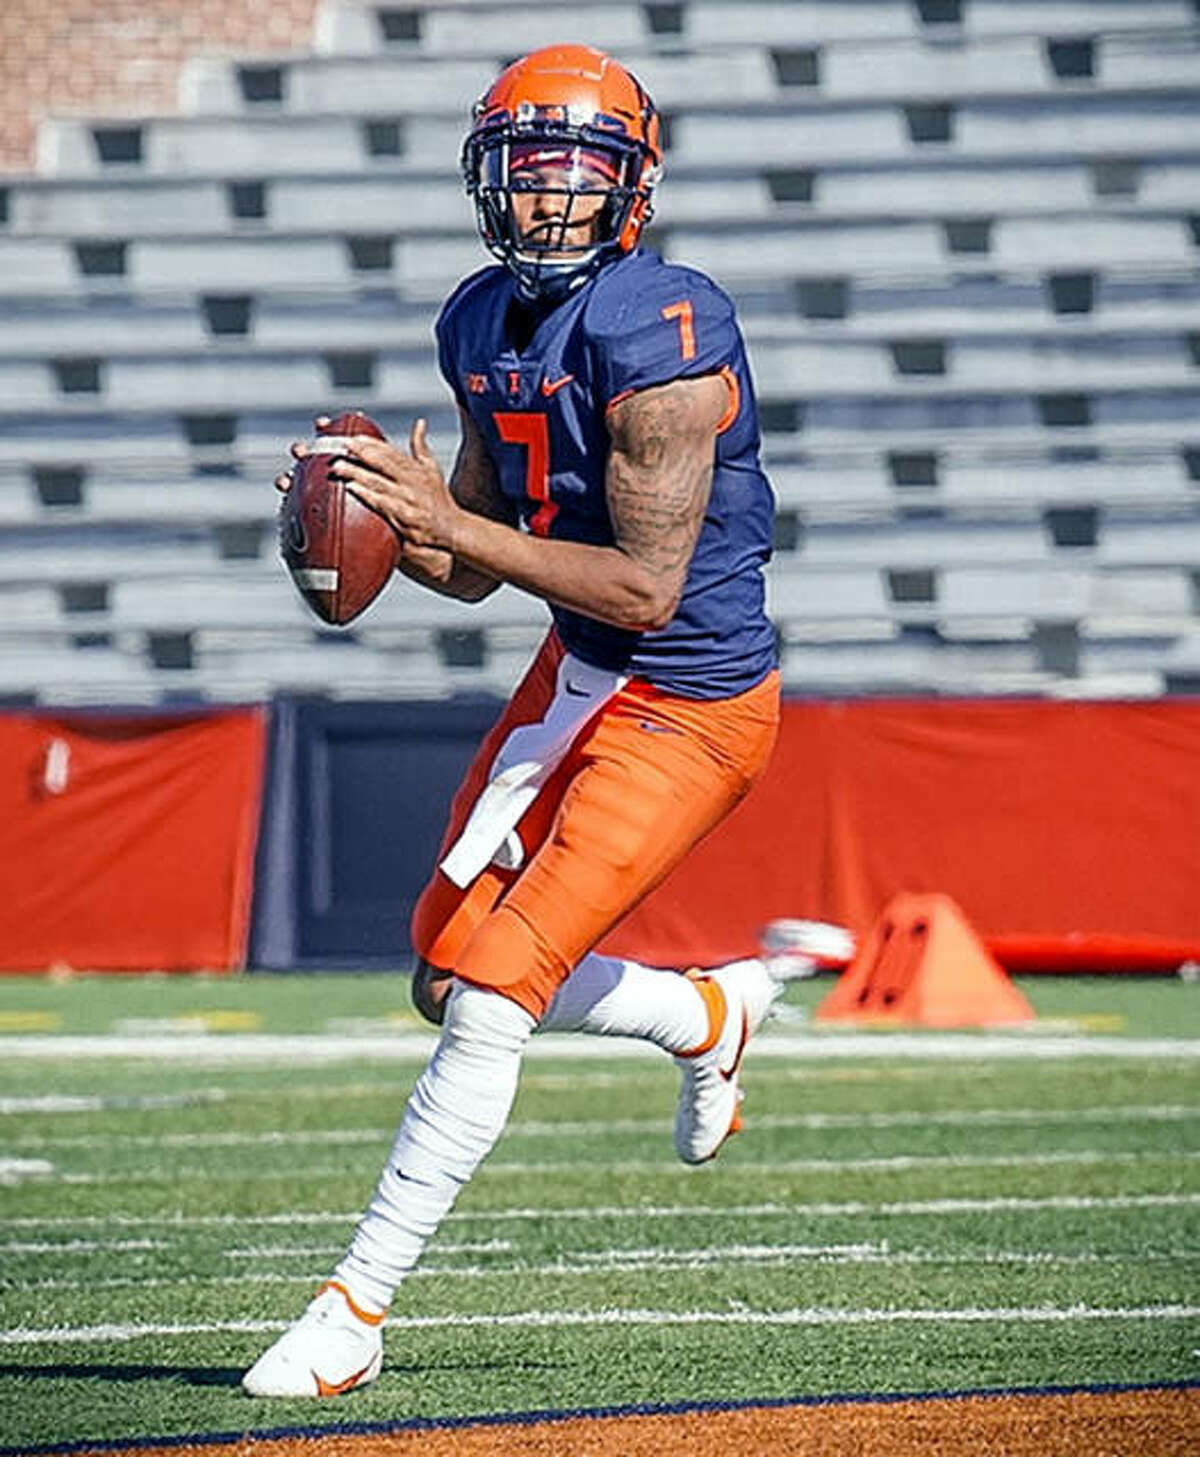 Quarterback Coran Taylor looks for a target during last Saturday's loss to Purdue at Memorial Stadium. Taylor, a sophomore from Peoria, is the fourth-string quarterback for Illinois, but was forced into action because of coronavirus and injuries to other QBs.